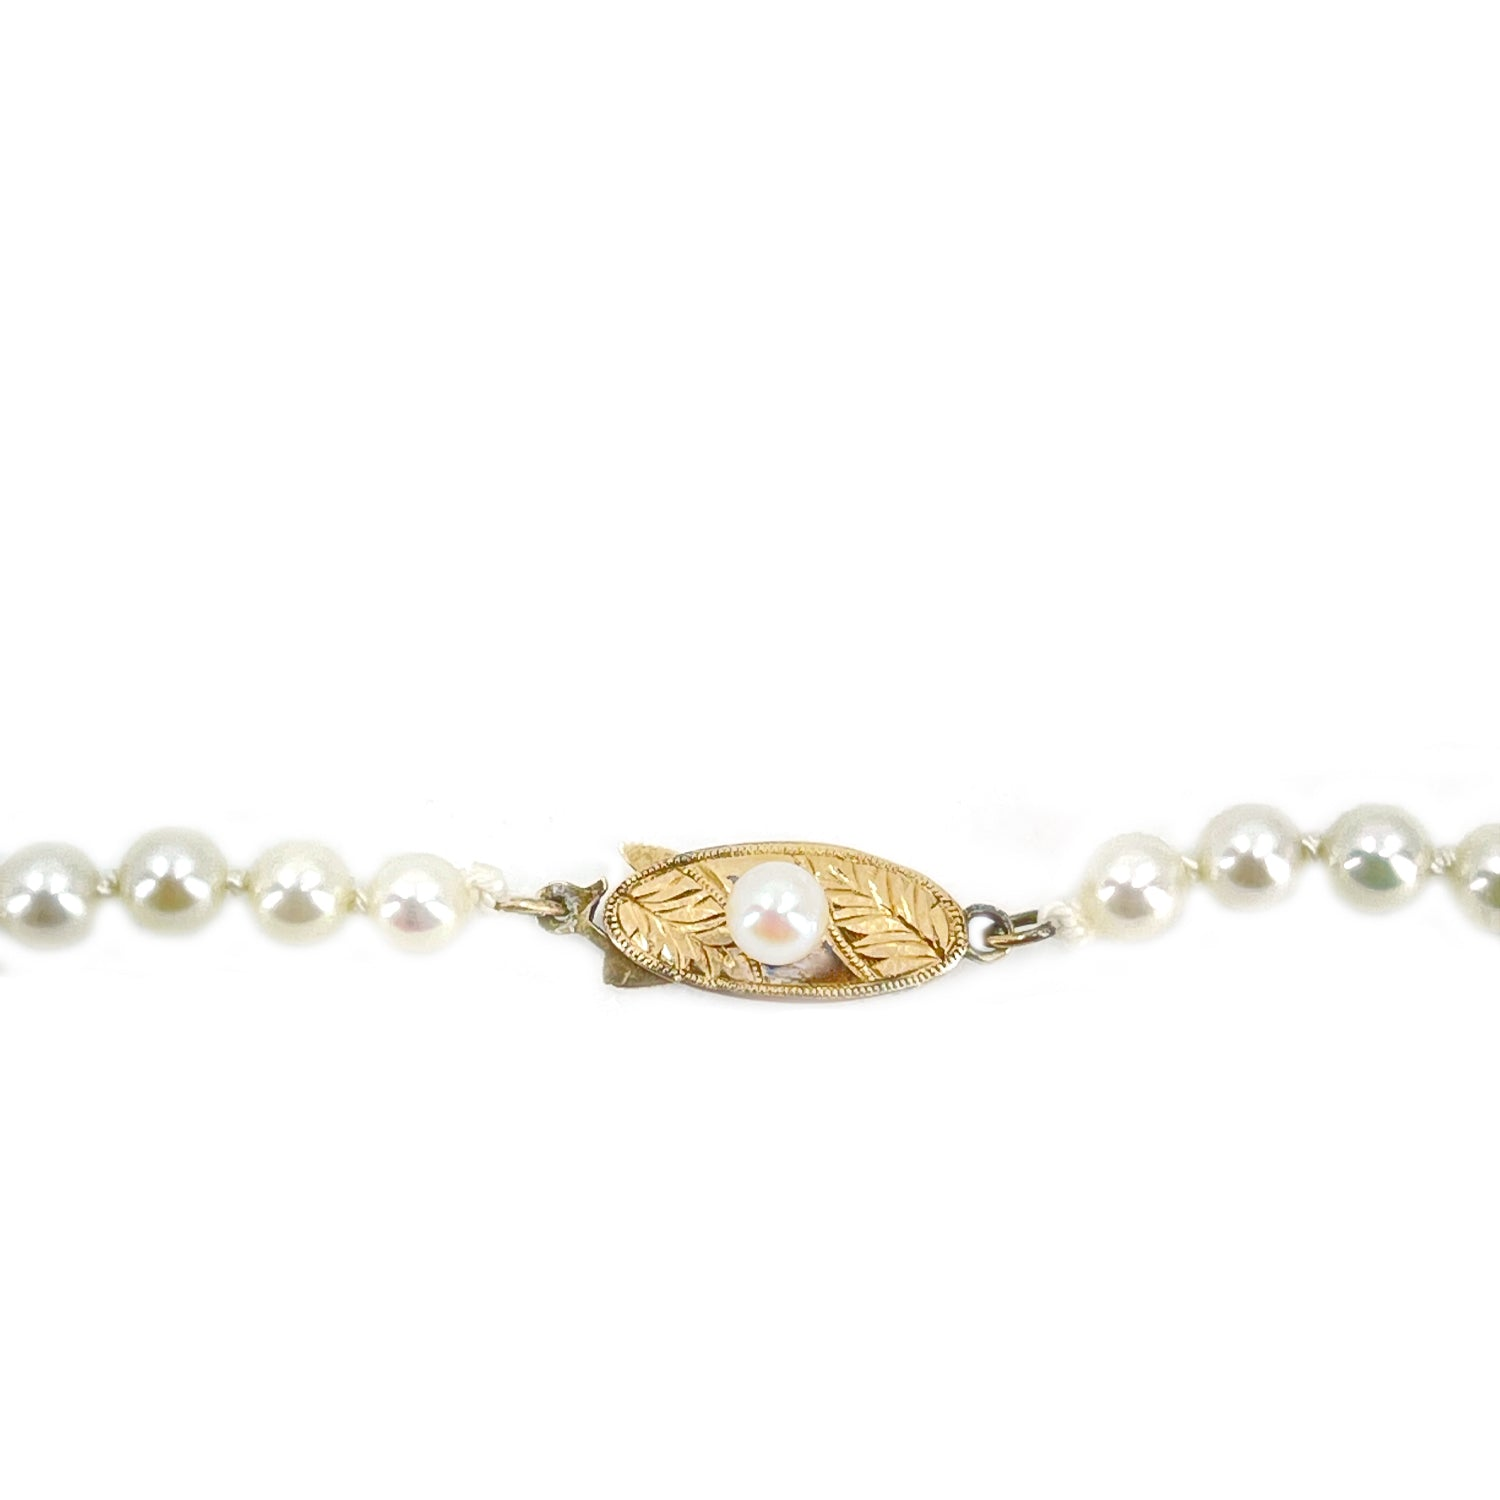 Art Deco Engraved Leaf Japanese Saltwater Cultured Akoya Pearl Necklace - 18K Yellow Gold 20.50 Inch